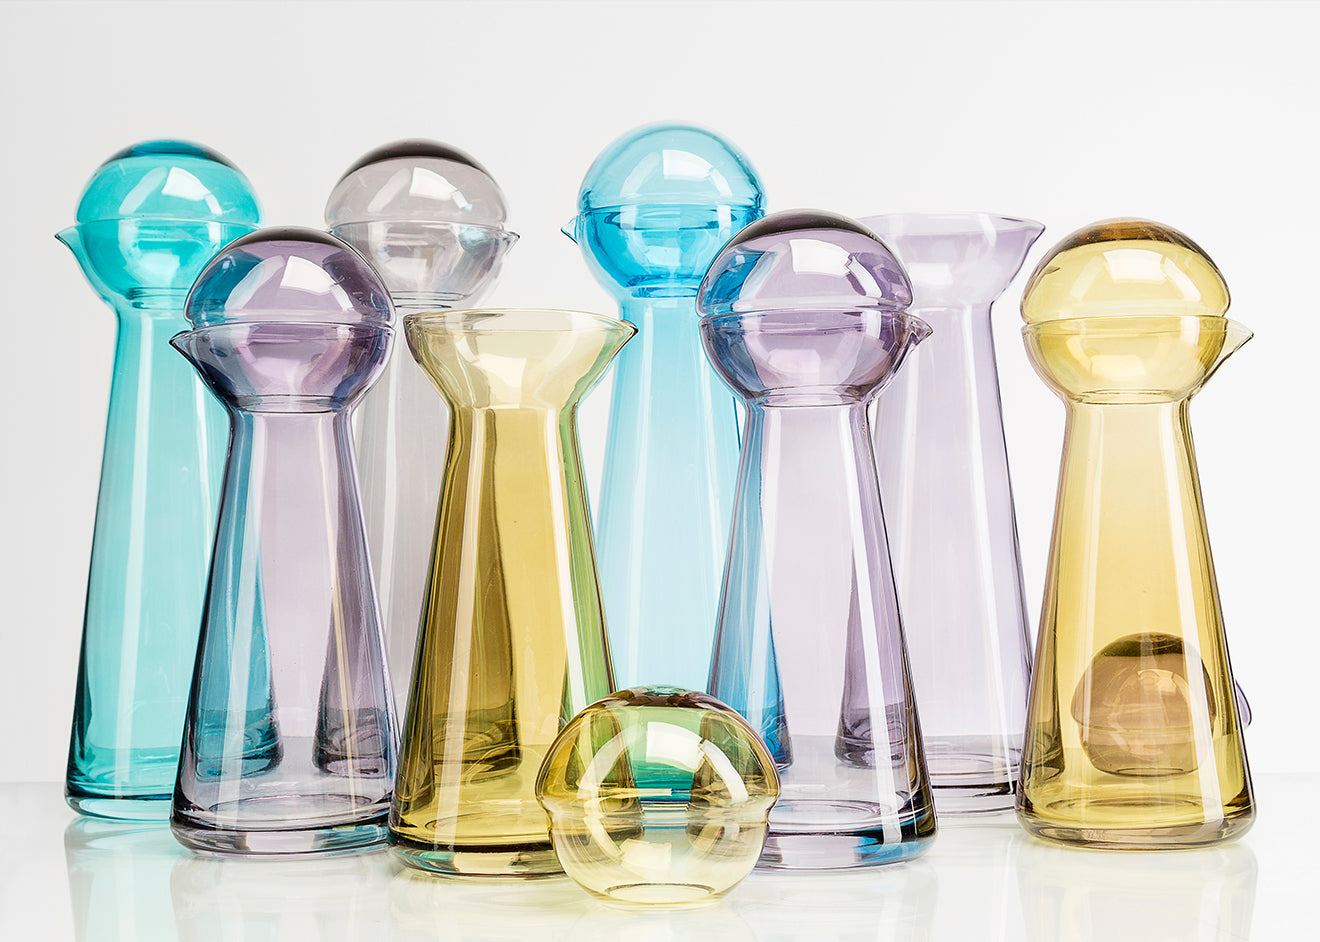 Birdie coloured glass decanter from Markus Johansson